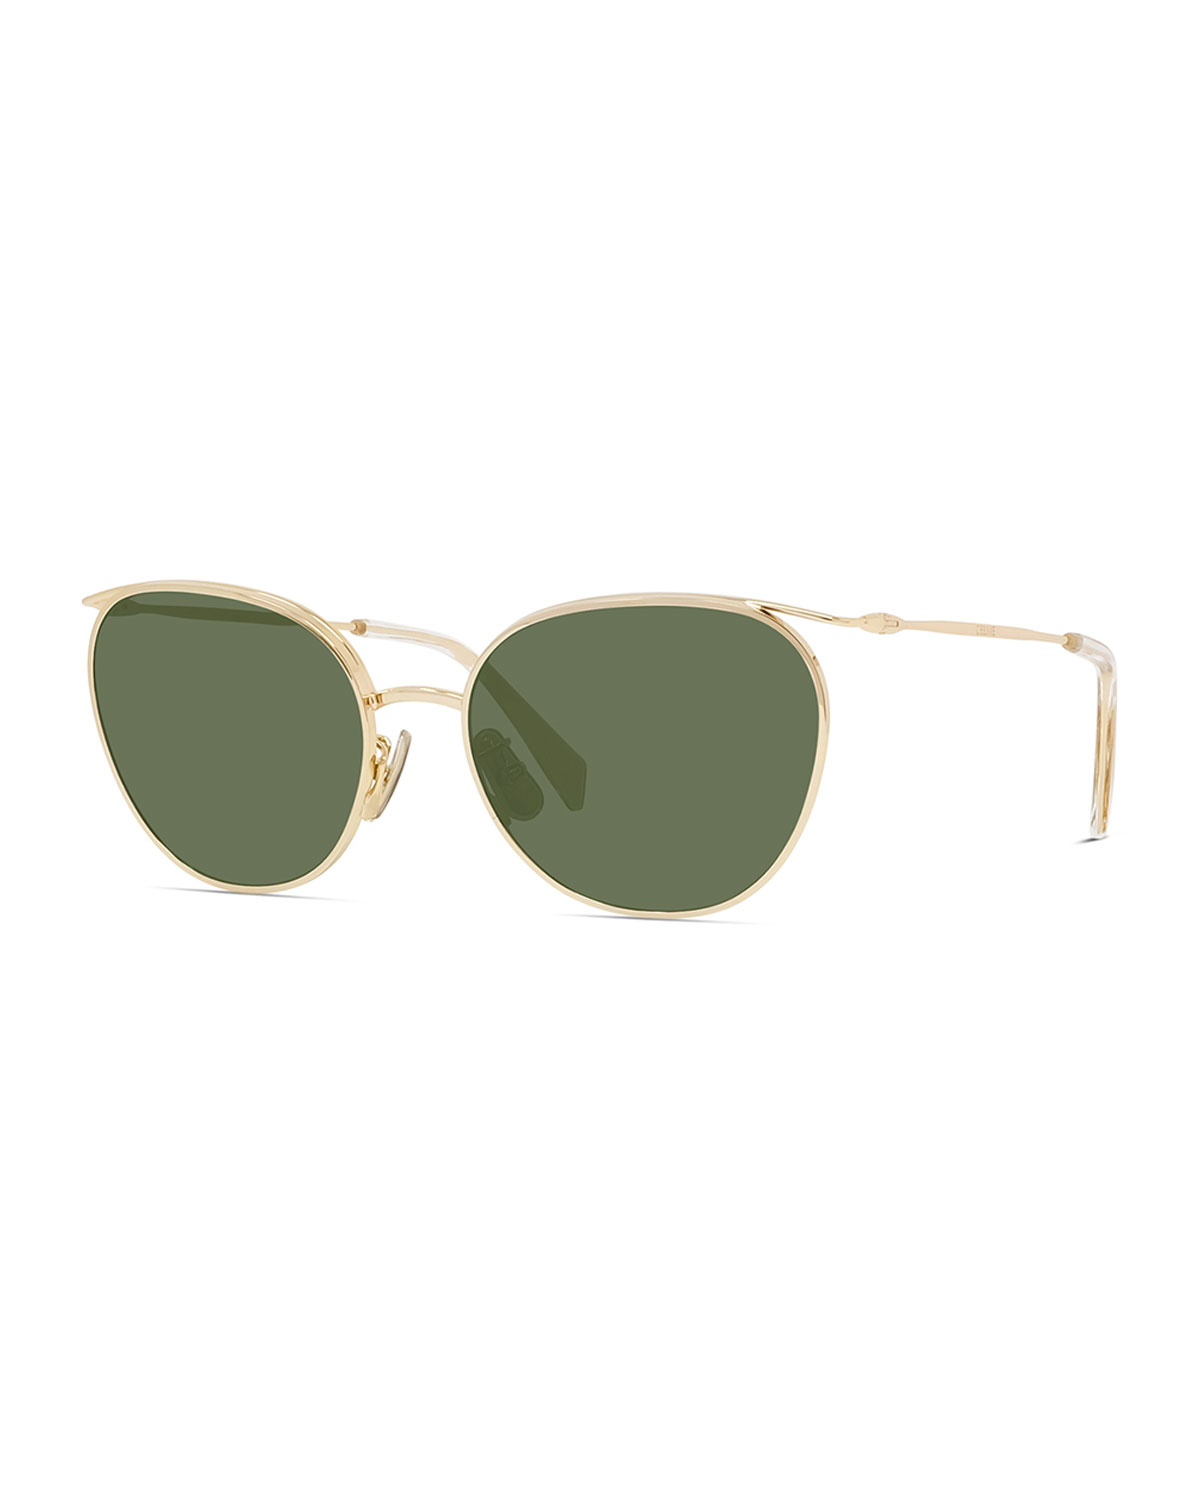 Oval Mineral Lens Sunglasses